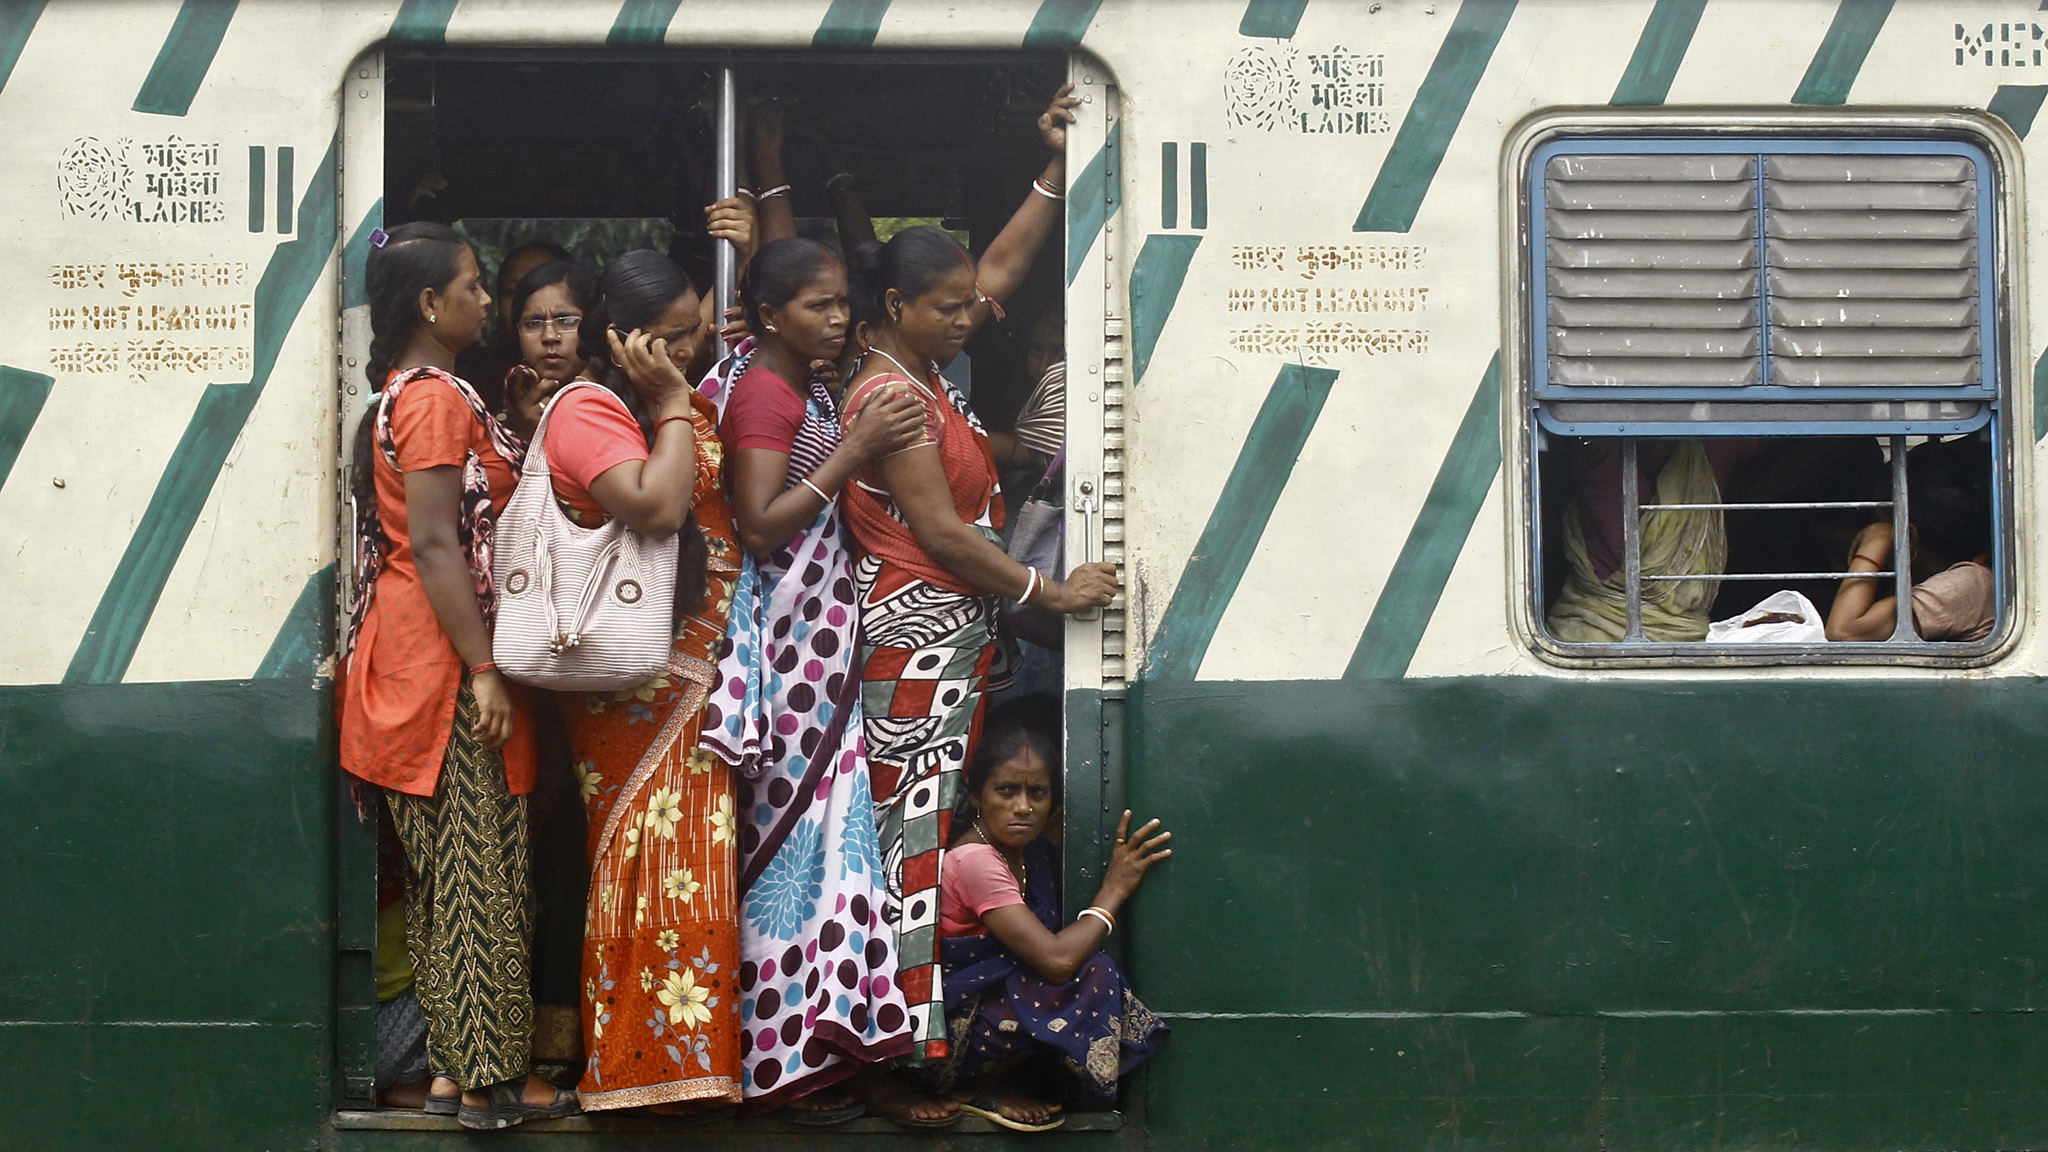 Train Sexually Harassed In India